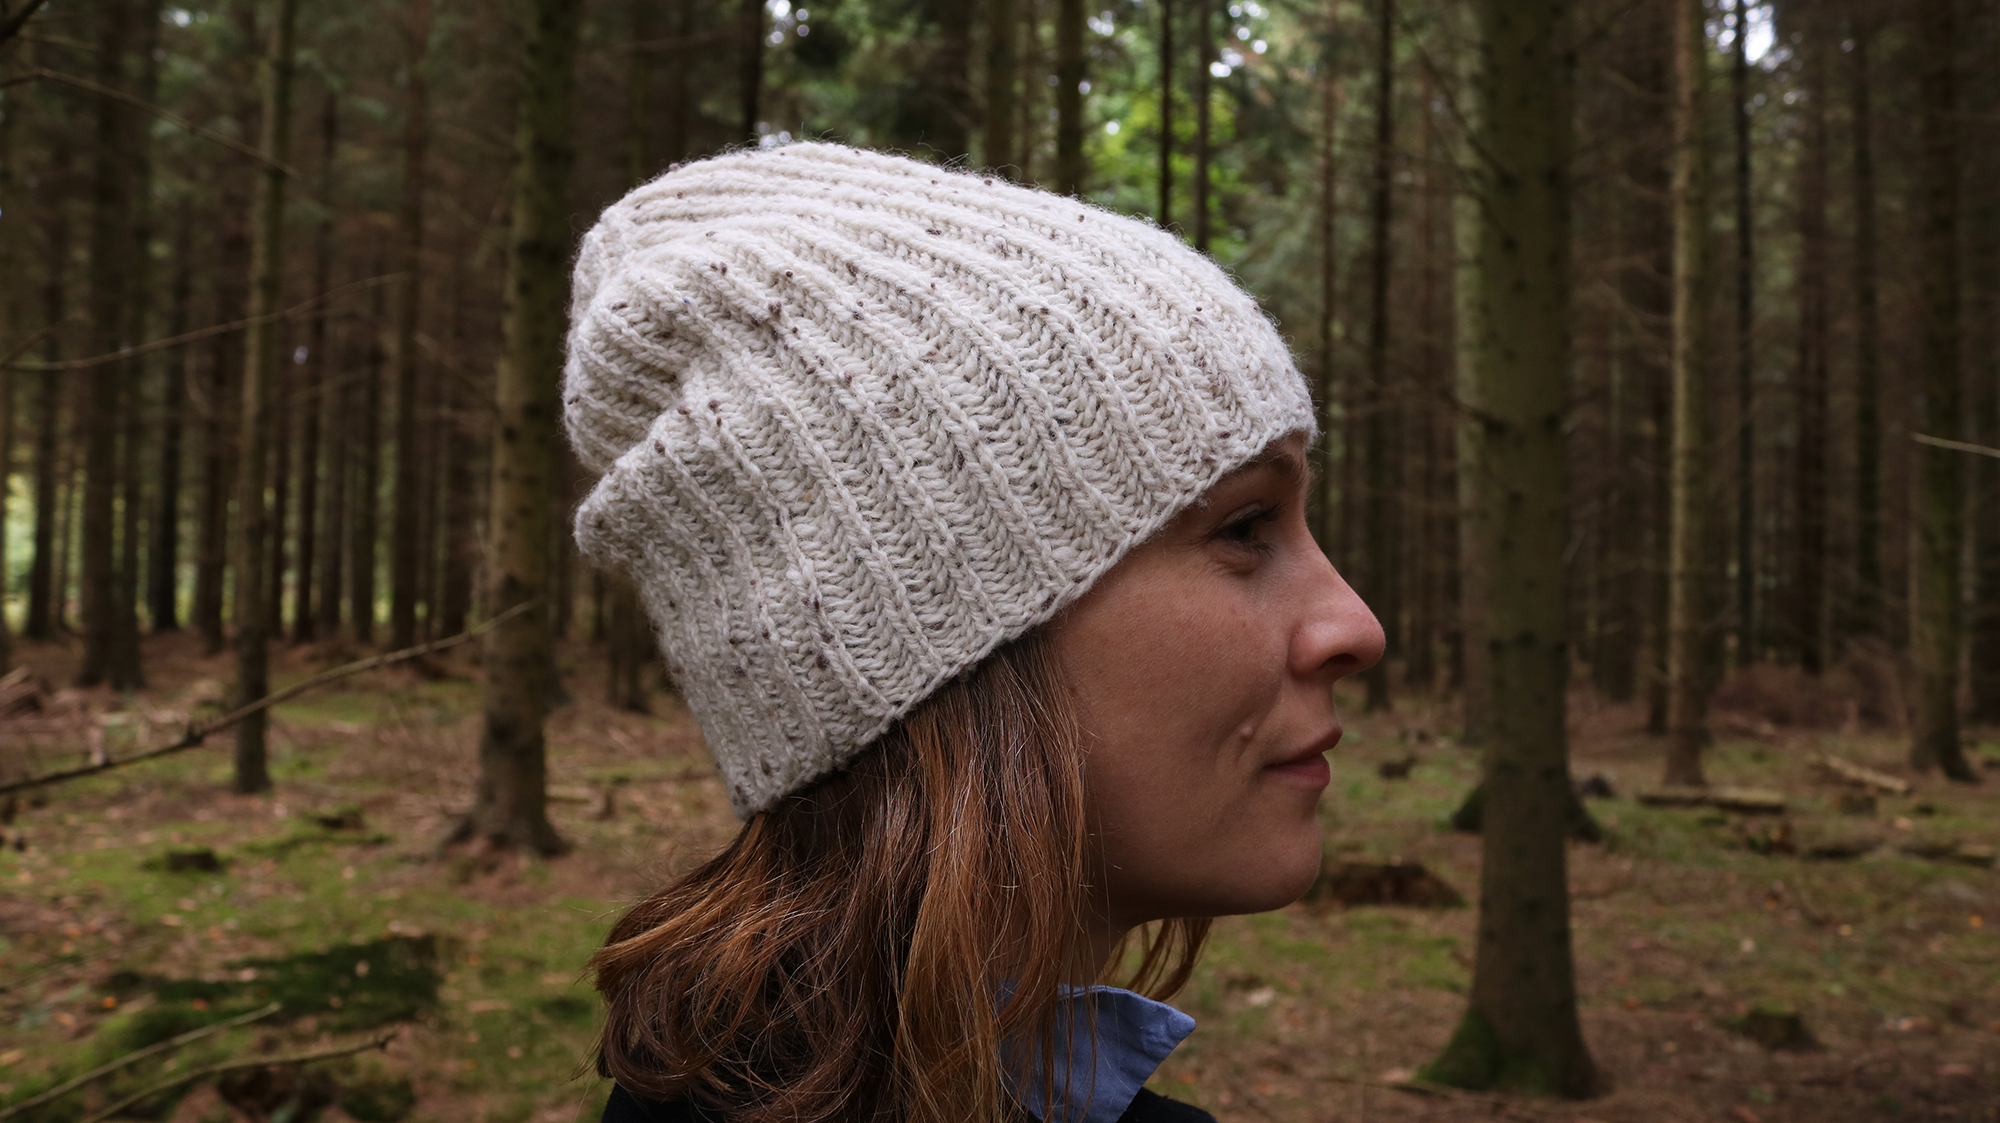 fd25bb0ecc59c Free brioche hat pattern - New and improved - Bogevald